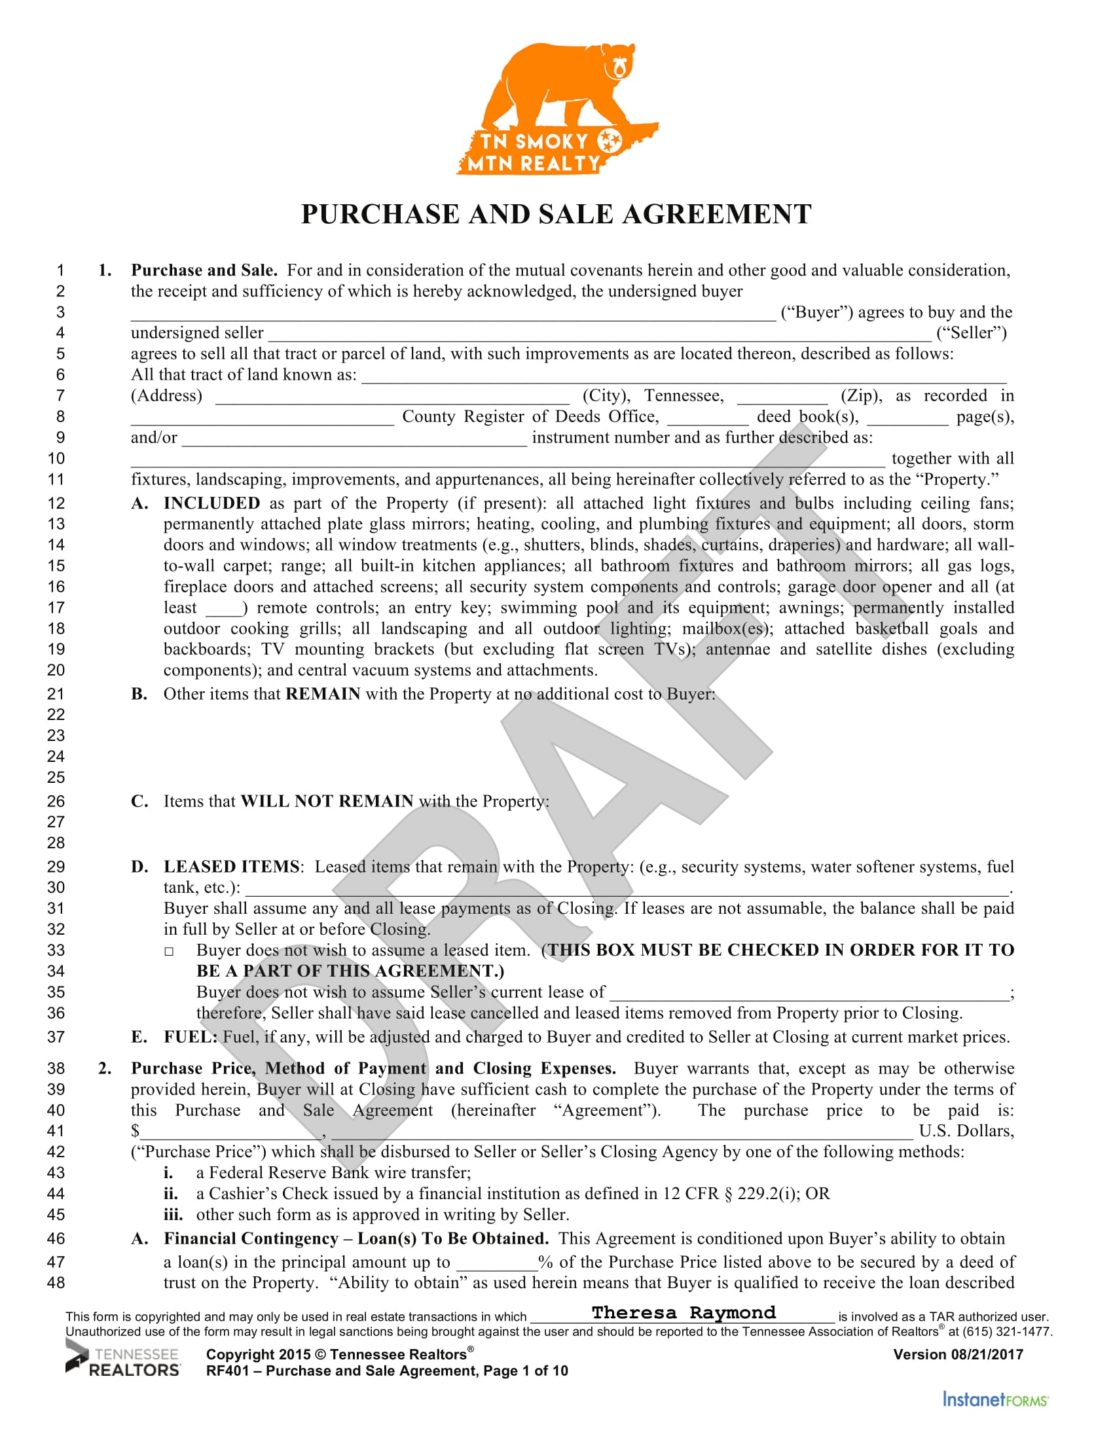 Necessary Documents To Purchase Homes In Tennessee - Tennessee legal forms